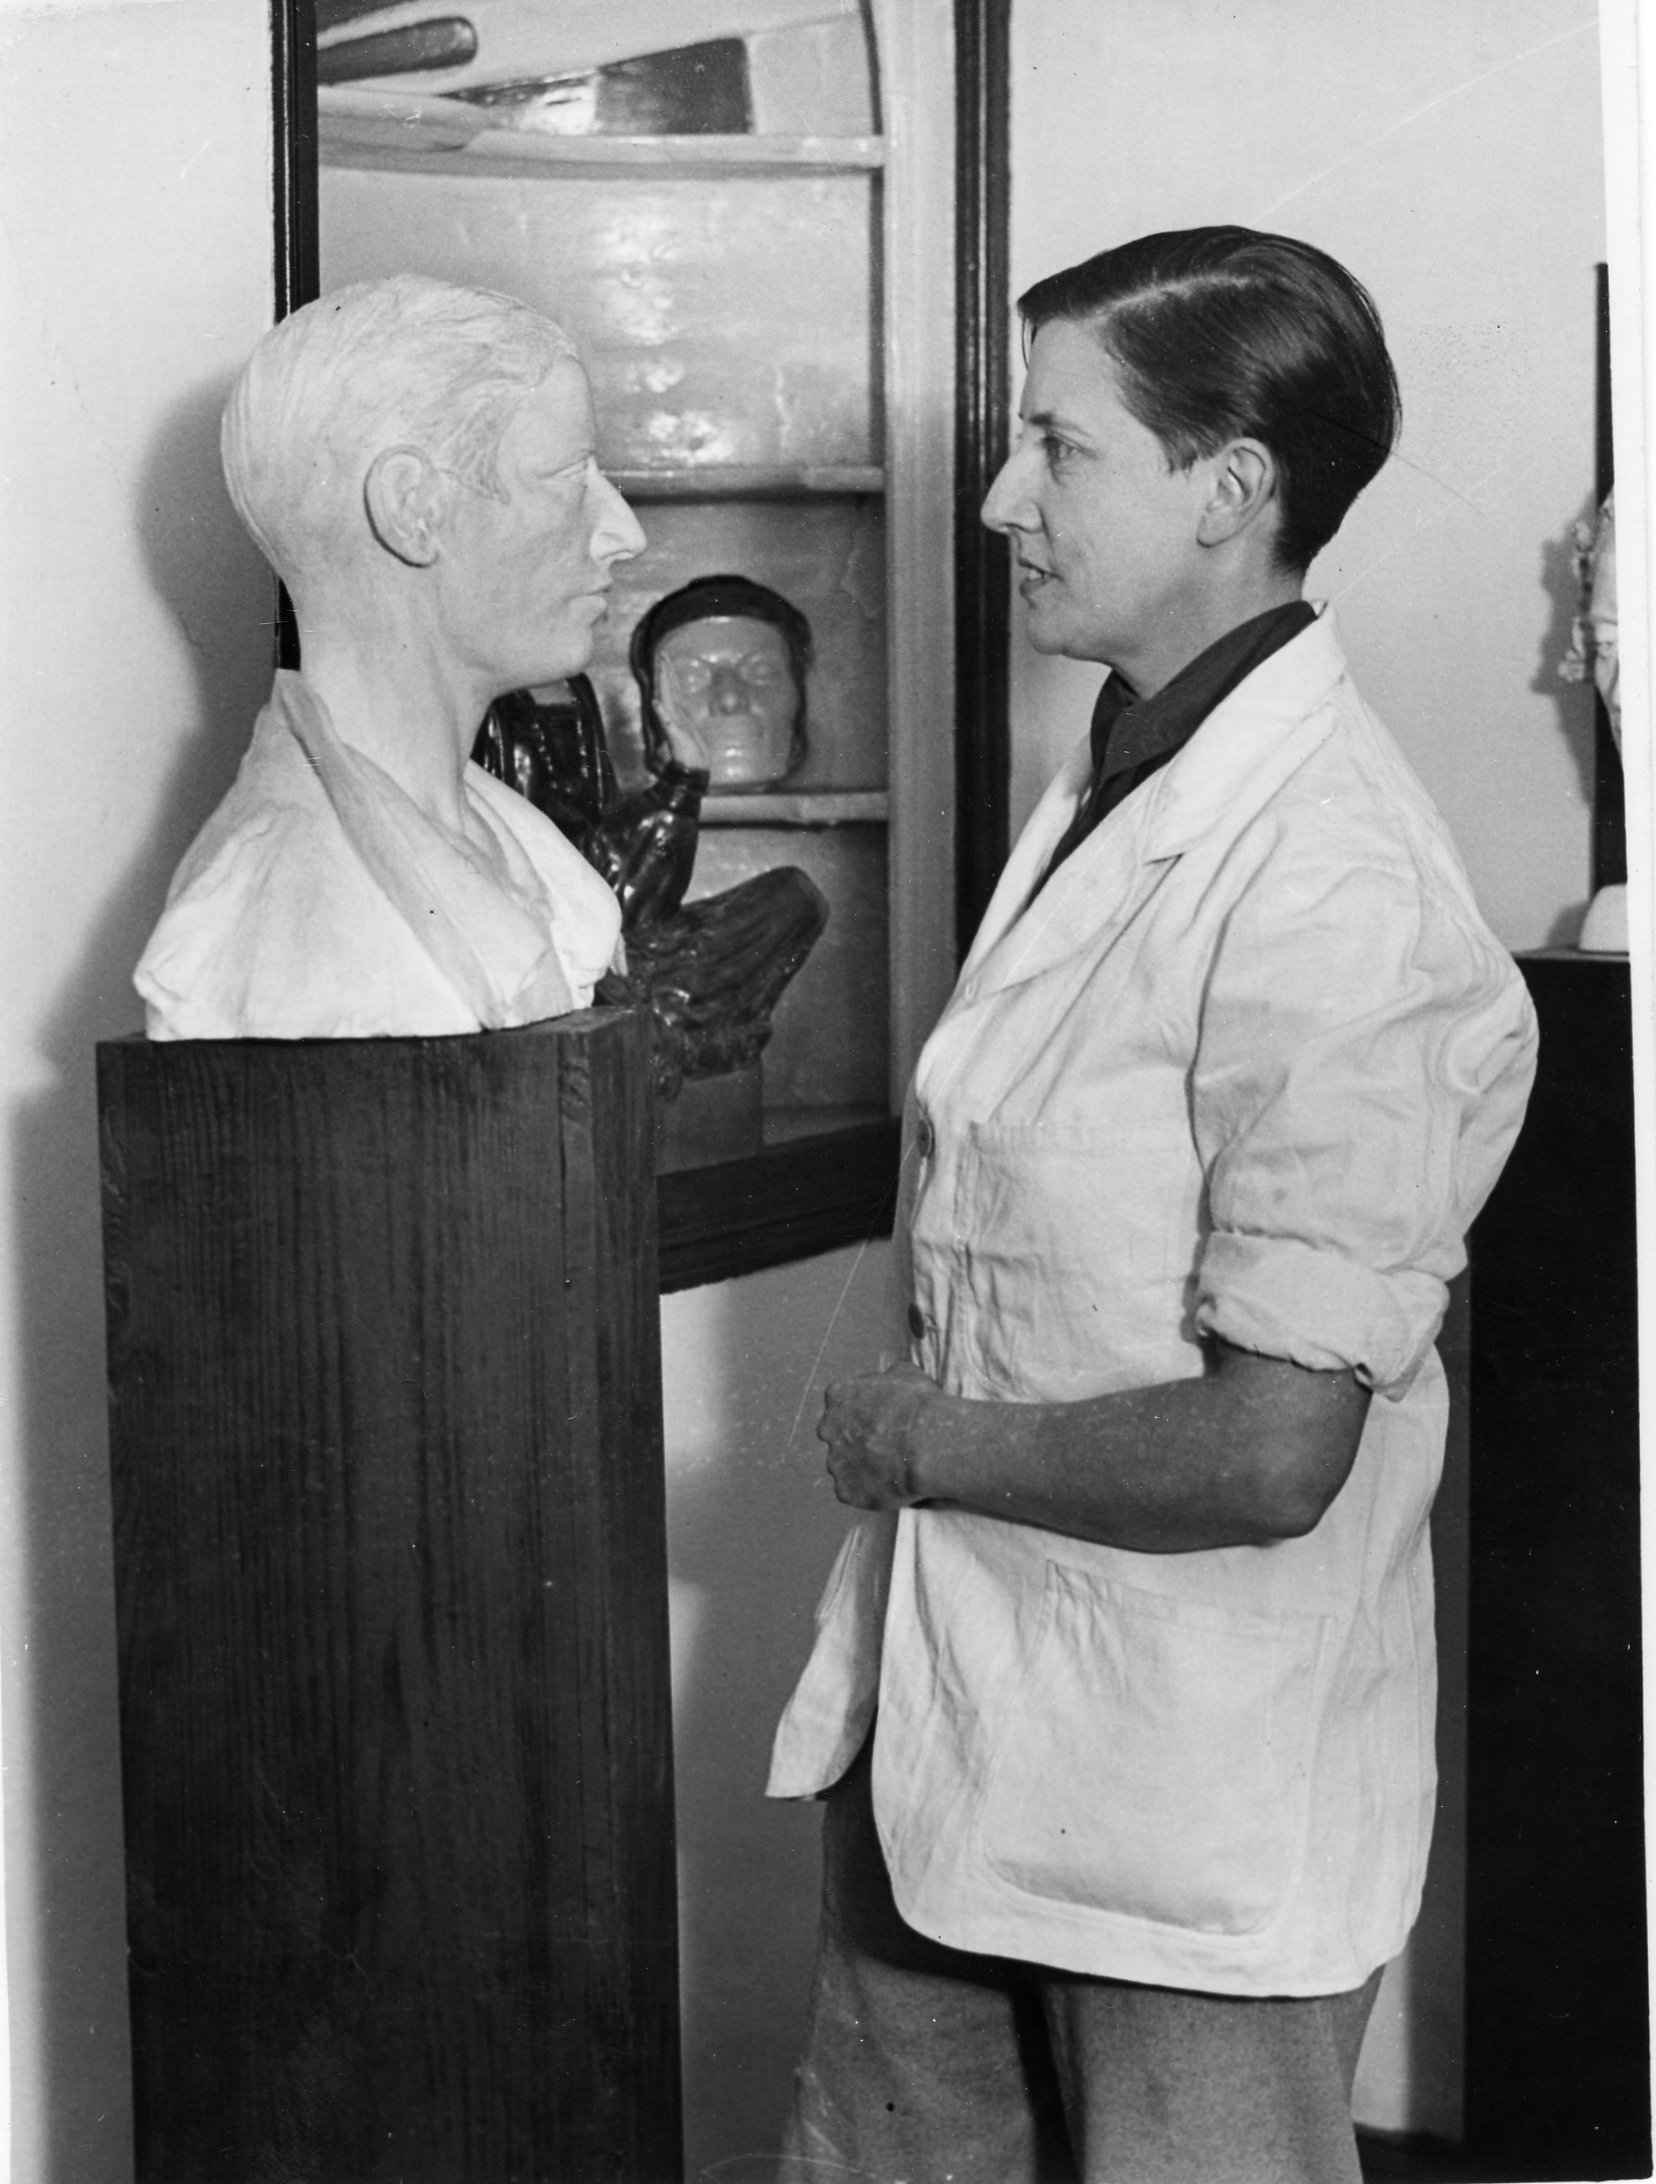 Standing young woman wearing overalls and short hair, facing a sculpture bust of herself.